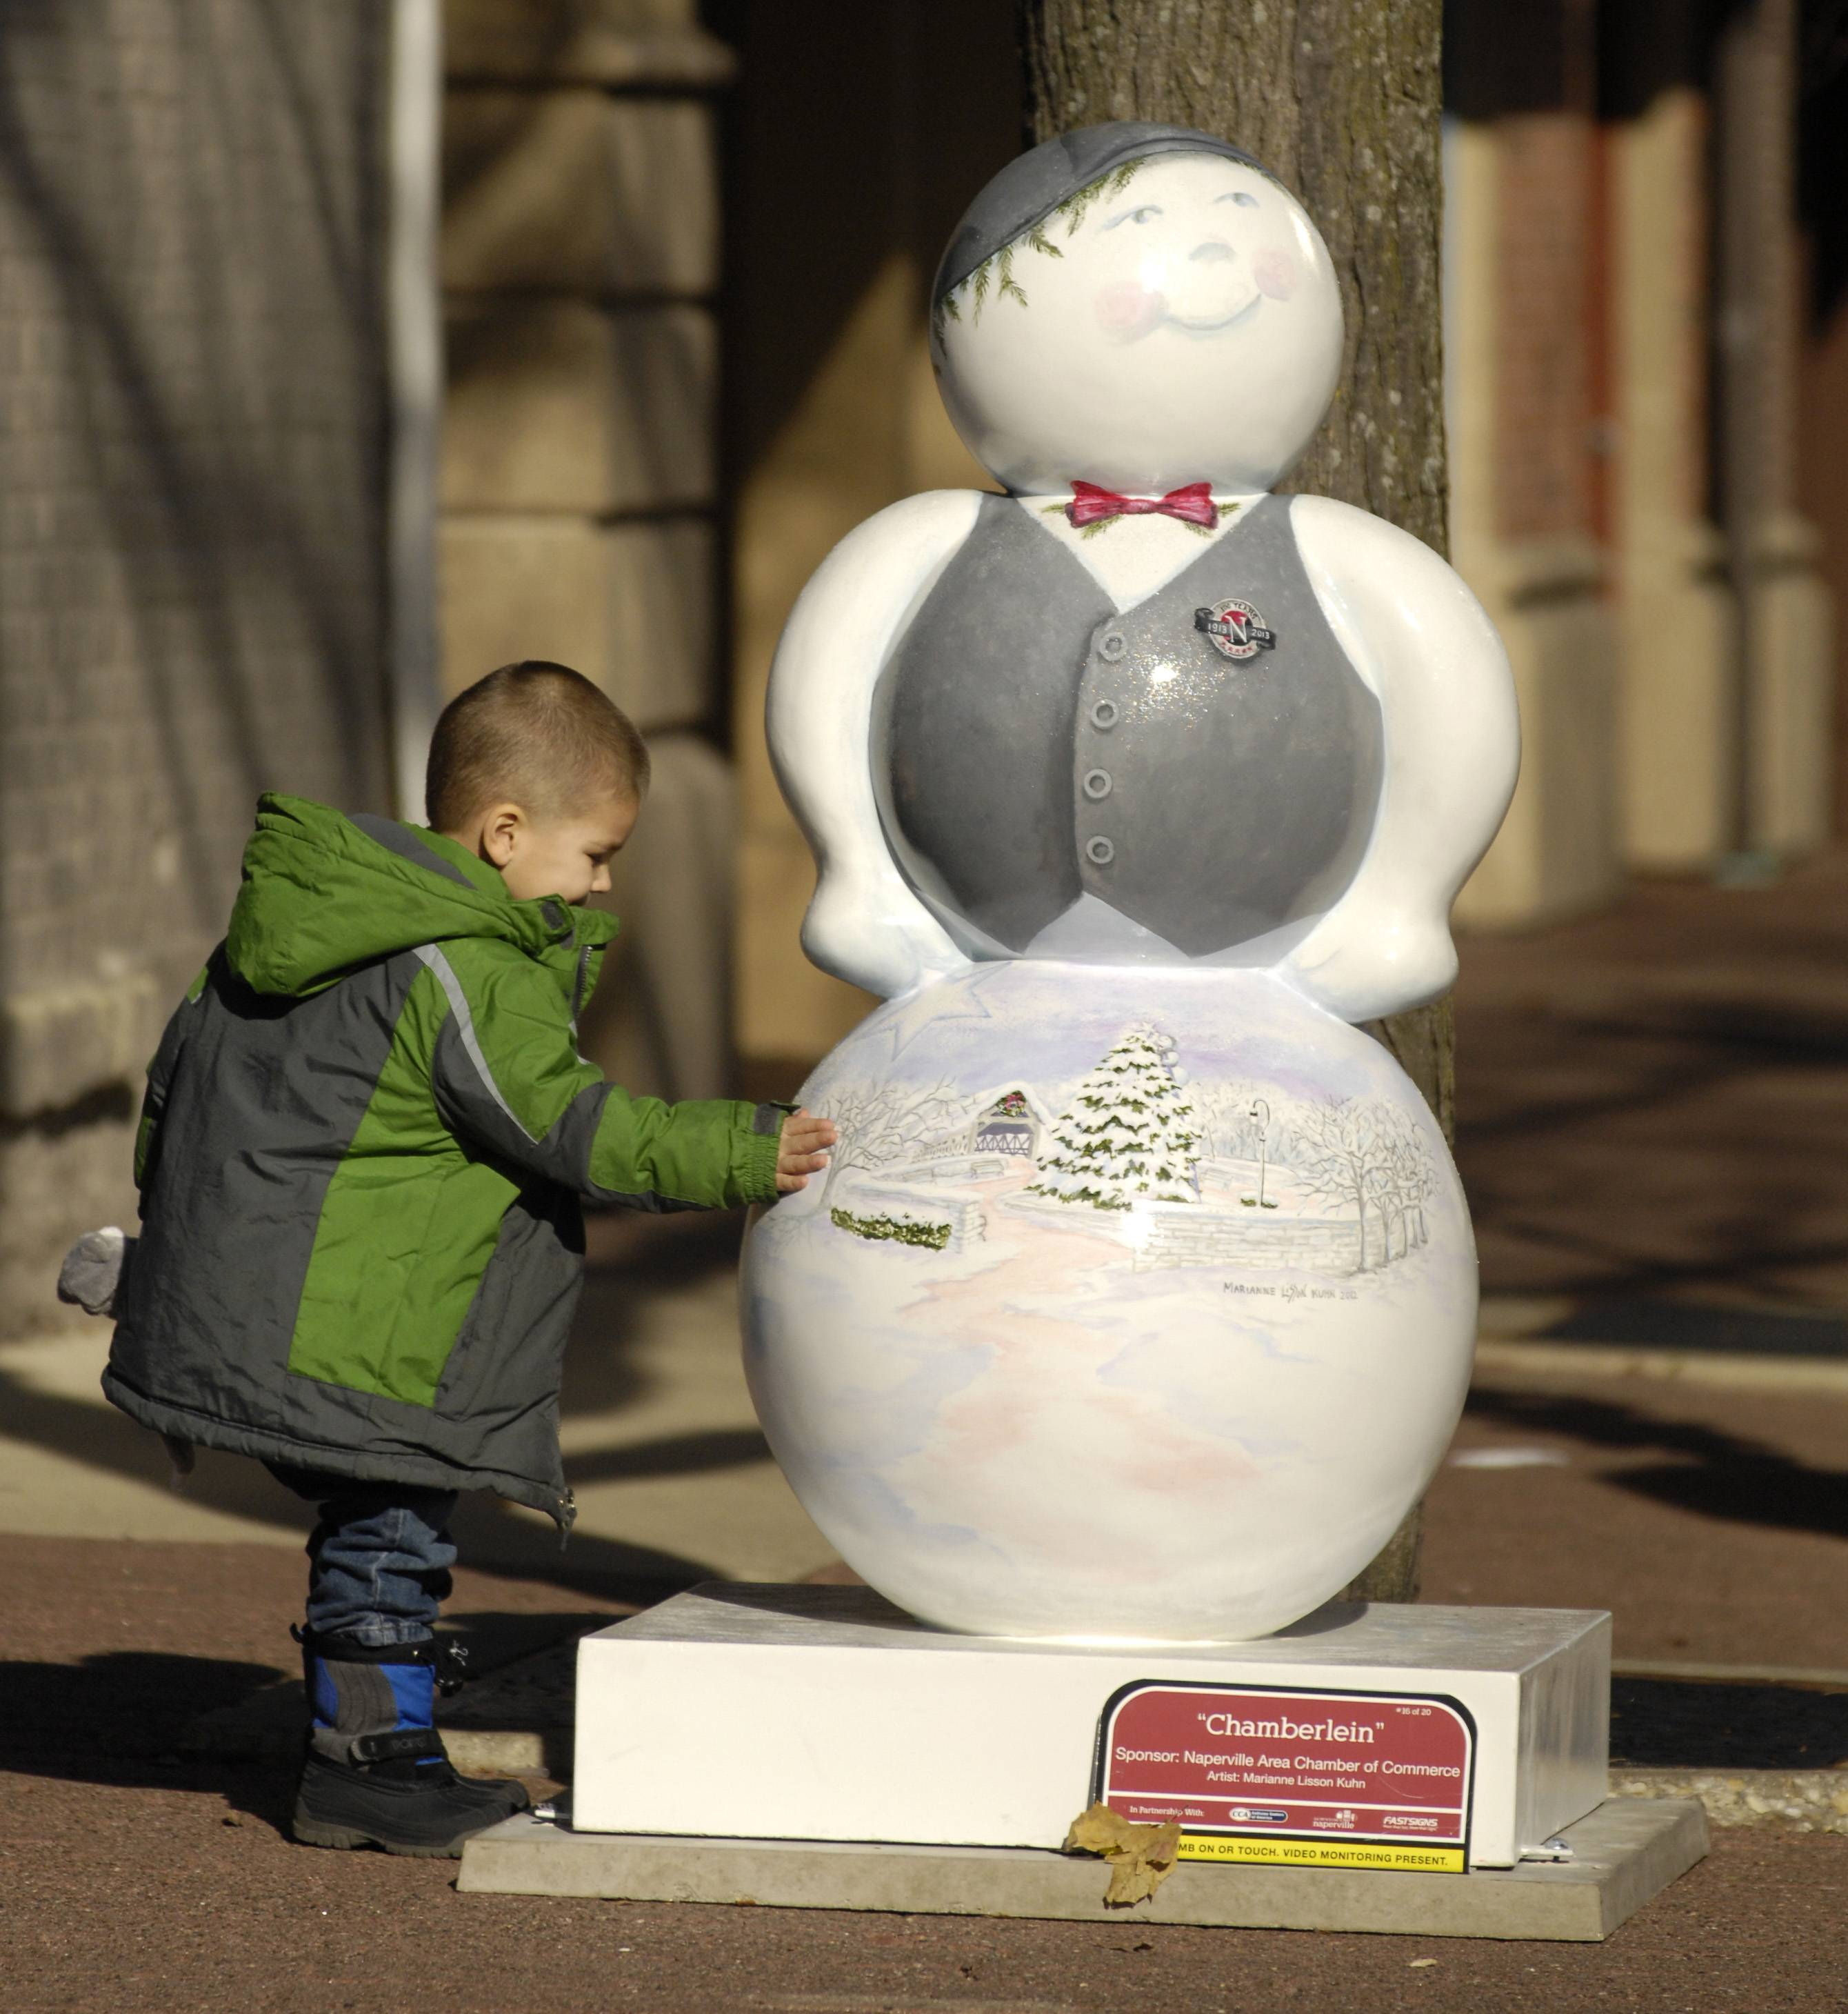 The Downtown Naperville Alliance launched an outdoor public art project featuring decorated sculptures of snowmen to celebrate the winter holidays in 2012. The idea caught on and this year the Alliance will be sponsoring a similar display featuring miniature steam engines.